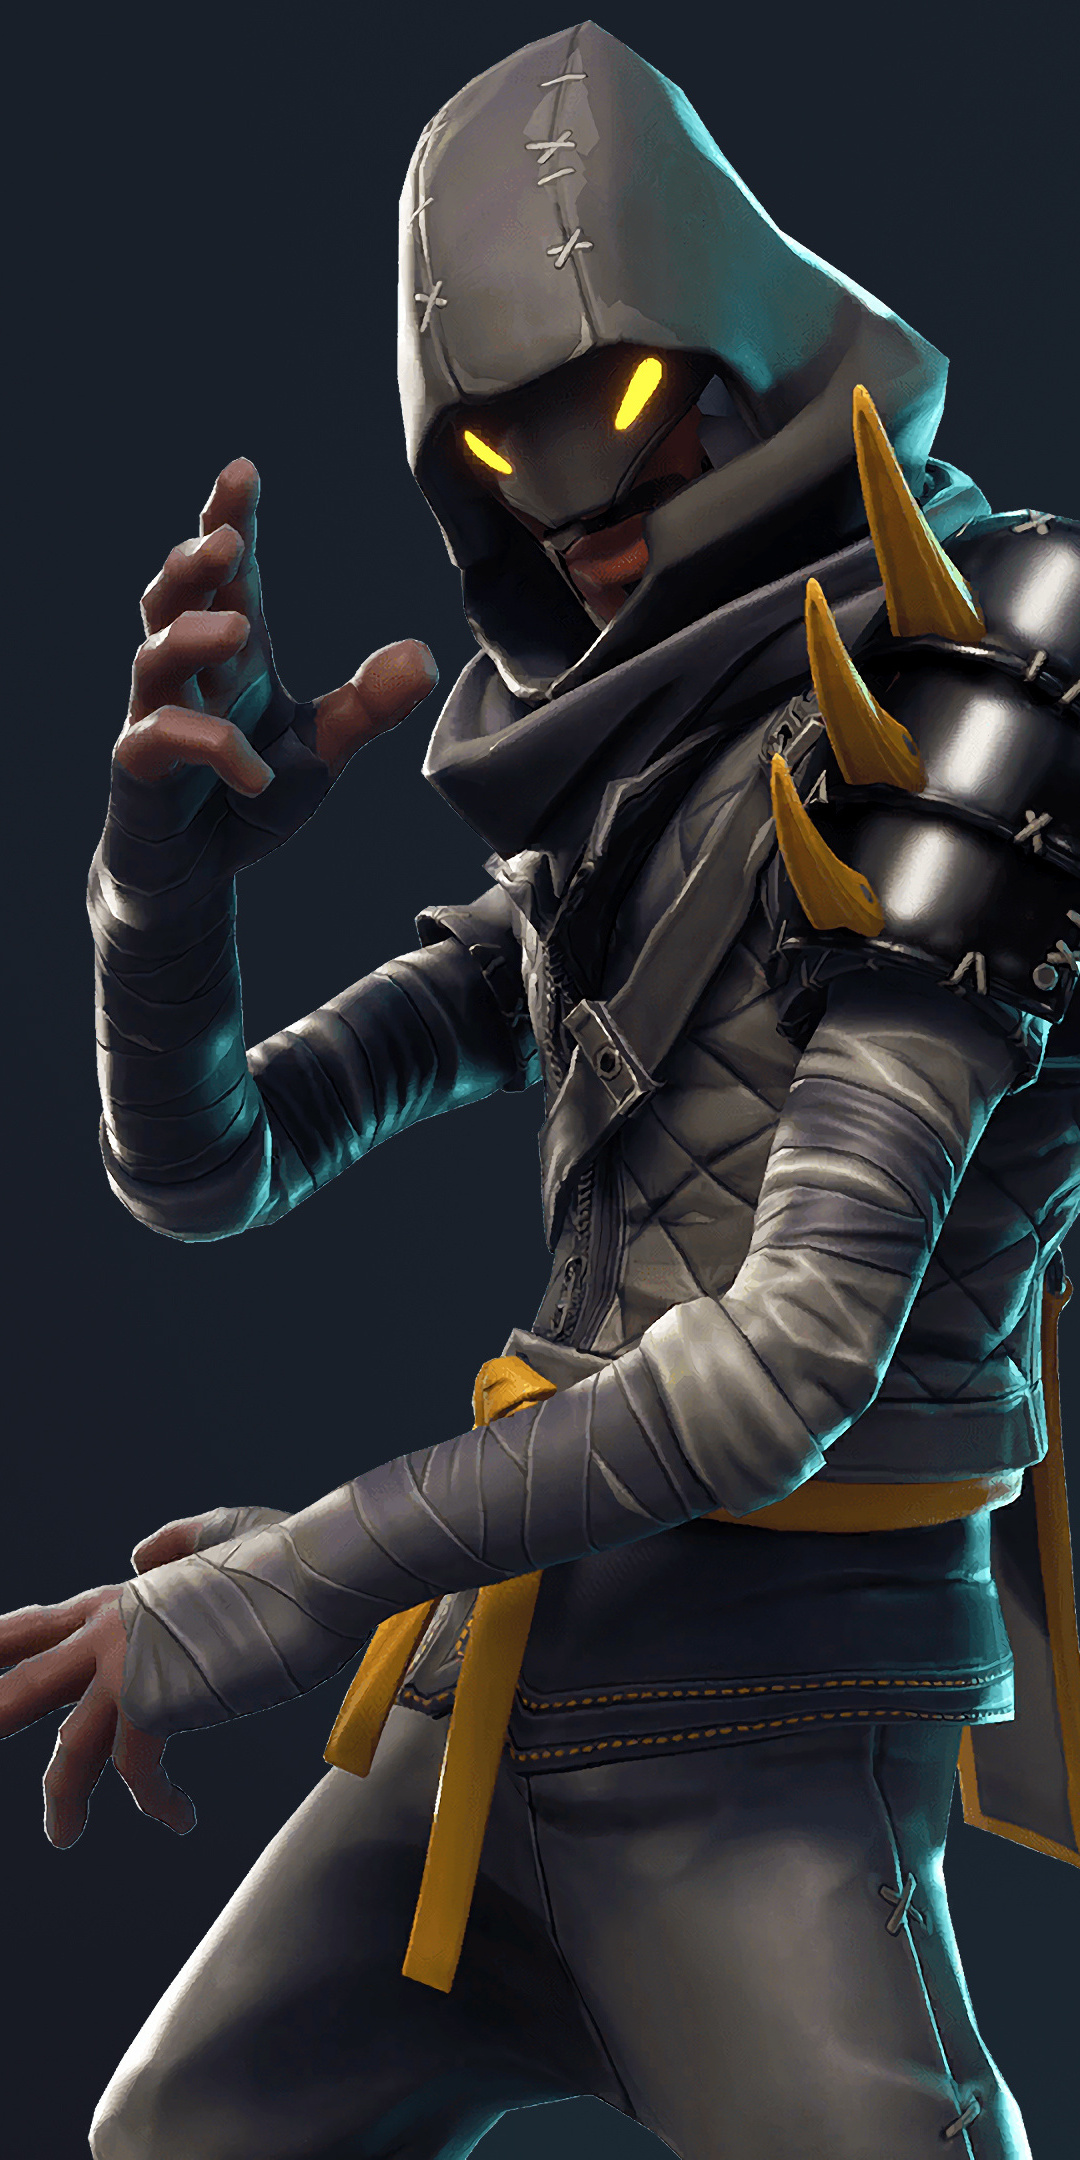 Ninja Costume Fortnite Rook Screenshots 1 Sc 1 St Fortnite Skins